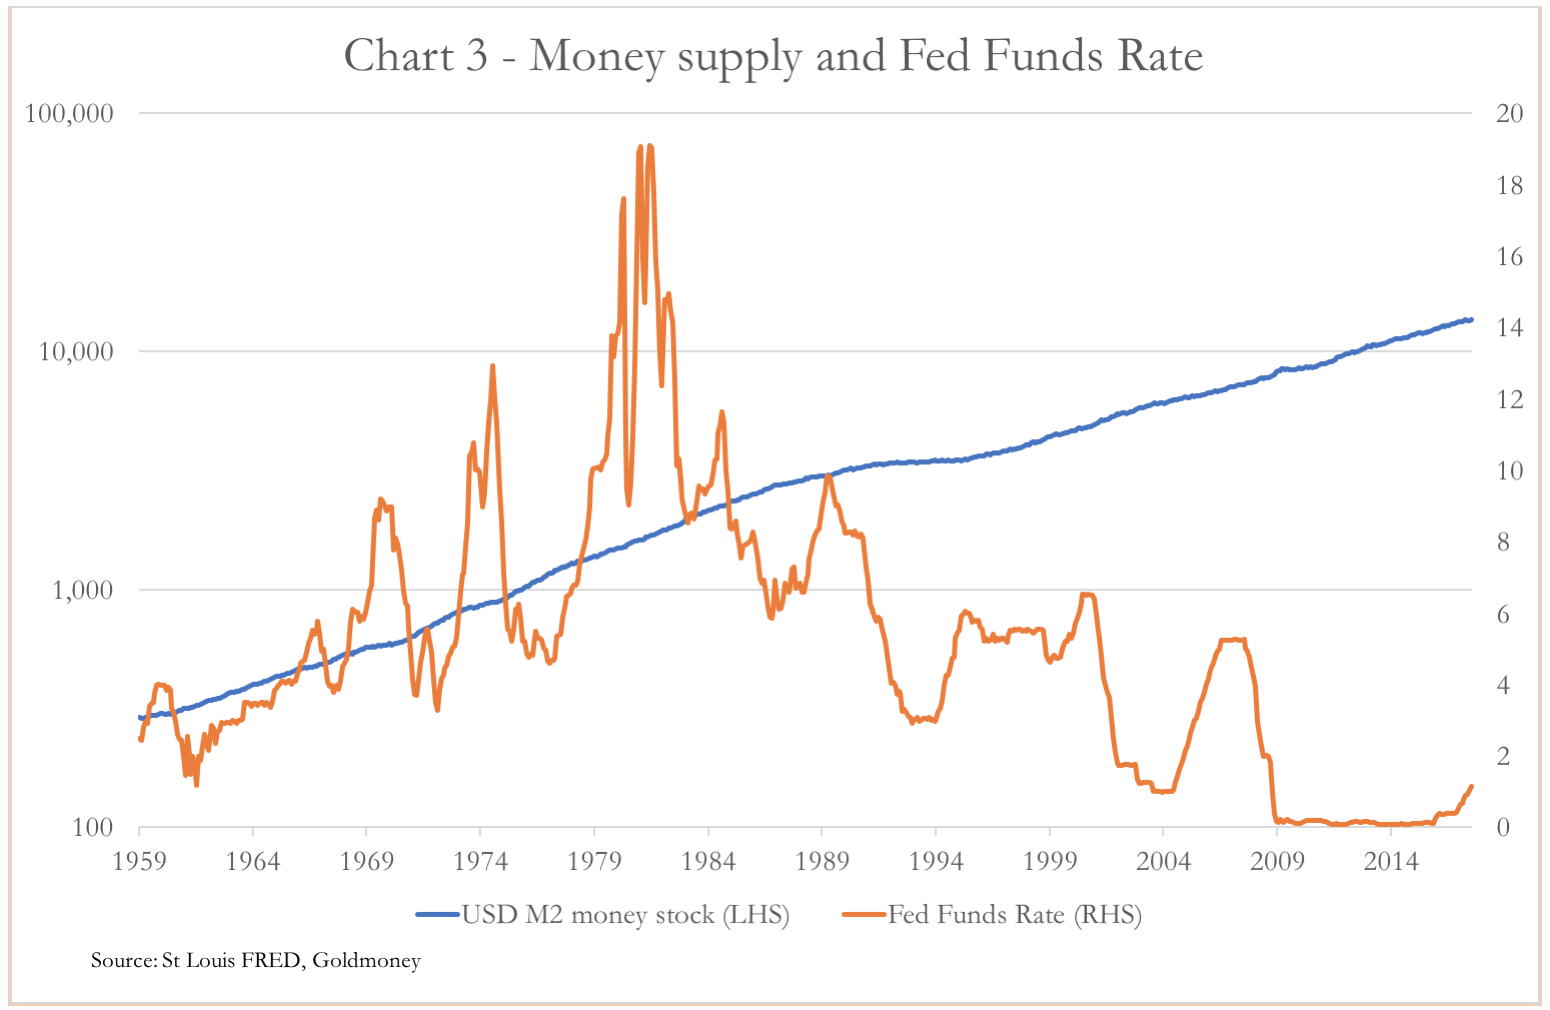 Money supply and Fed Funds Rate